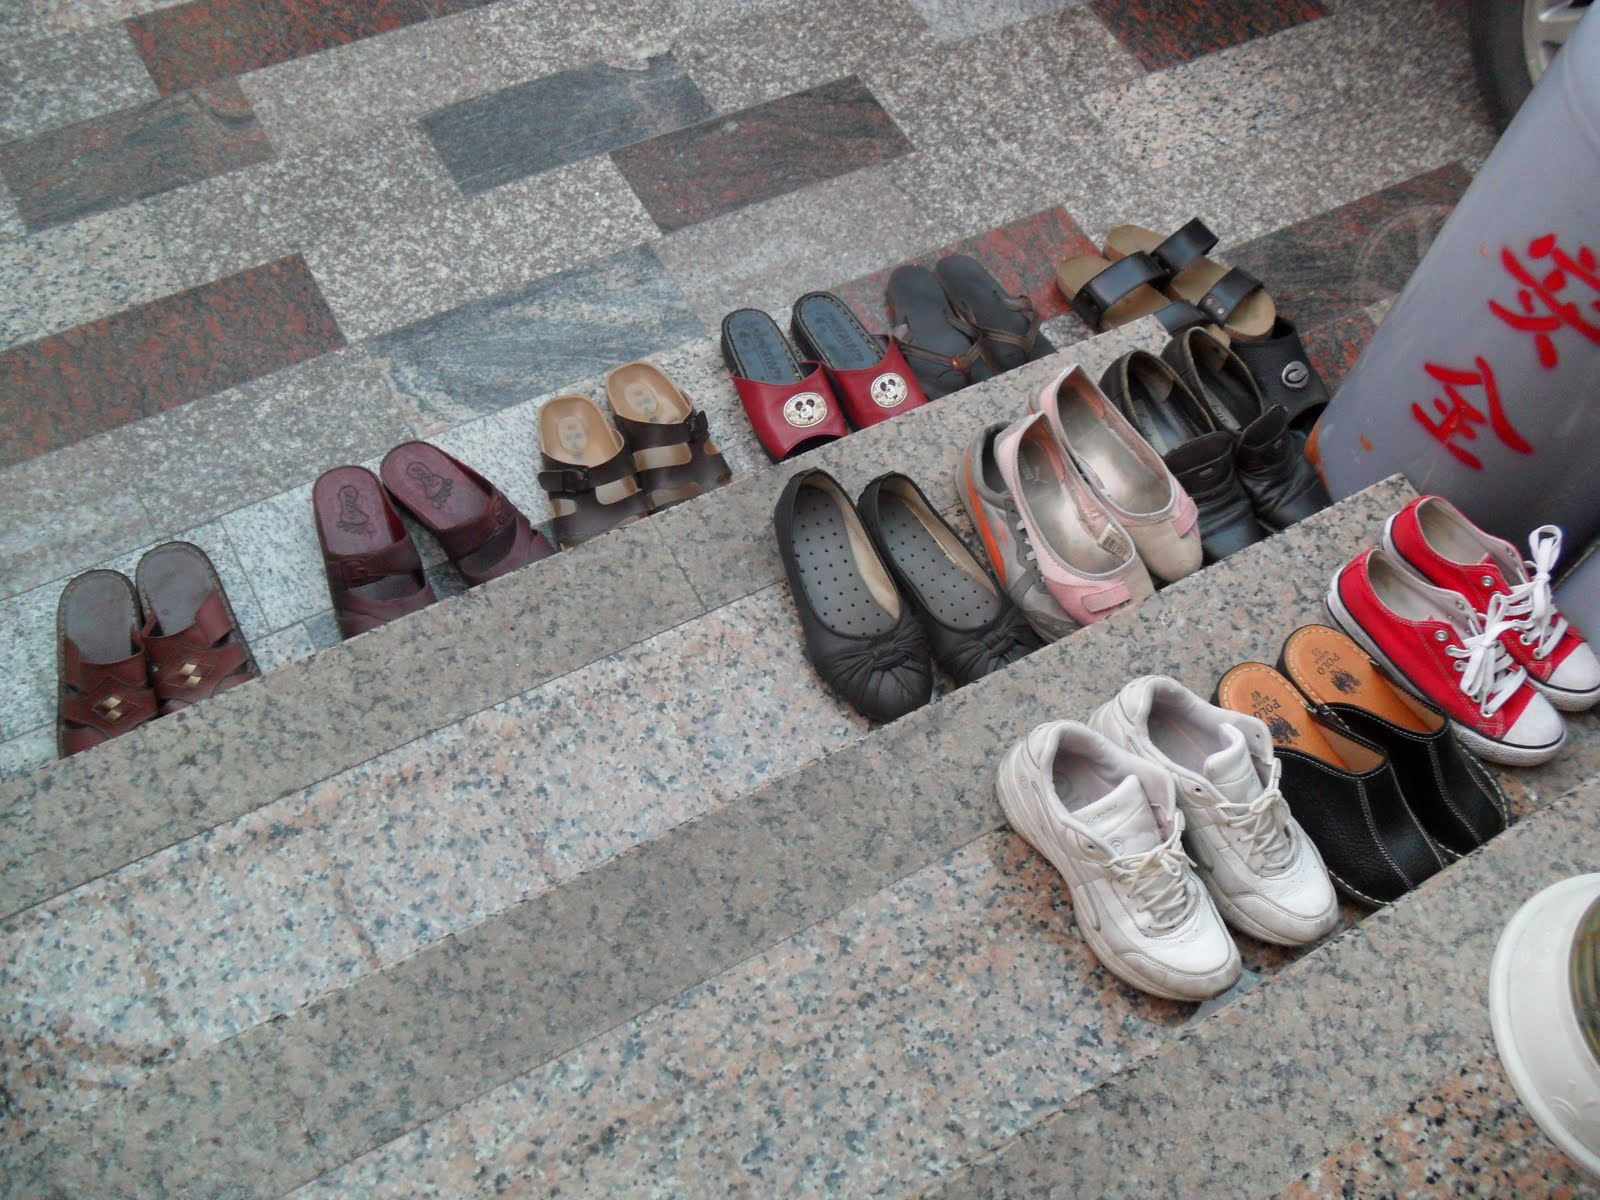 Removing shoes outside house can help prevent obesity'